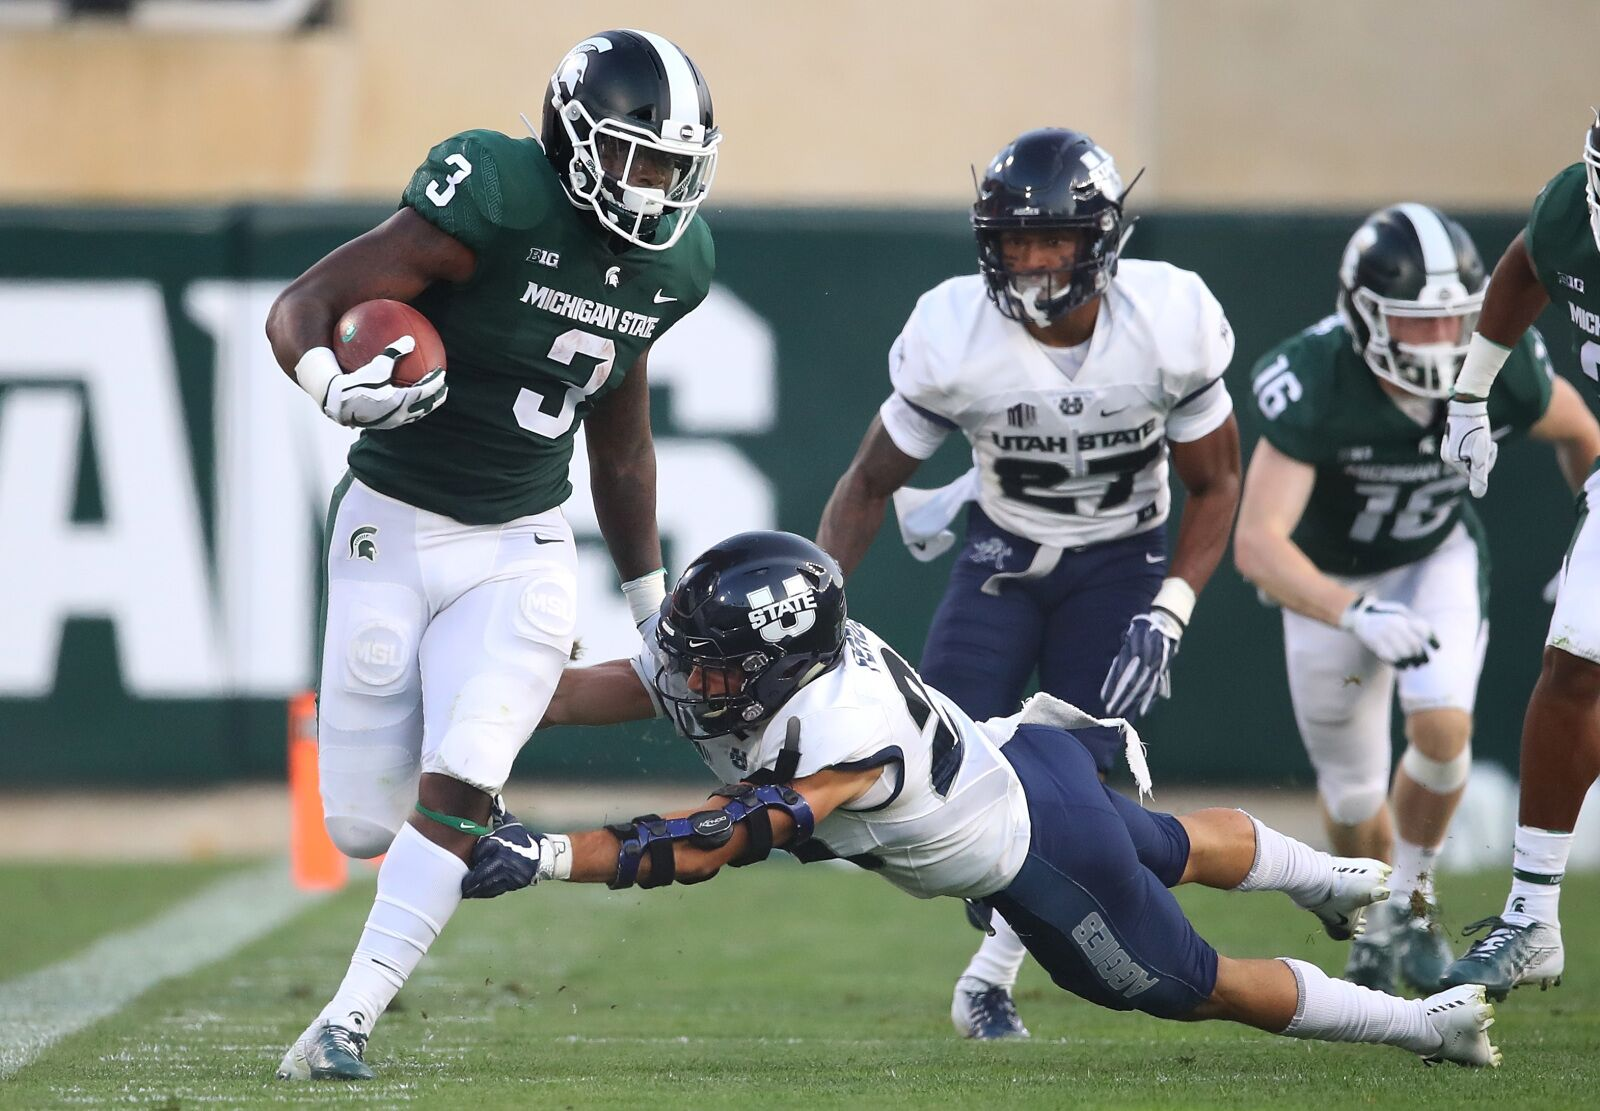 Michigan State Football: What's going on with LJ Scott?